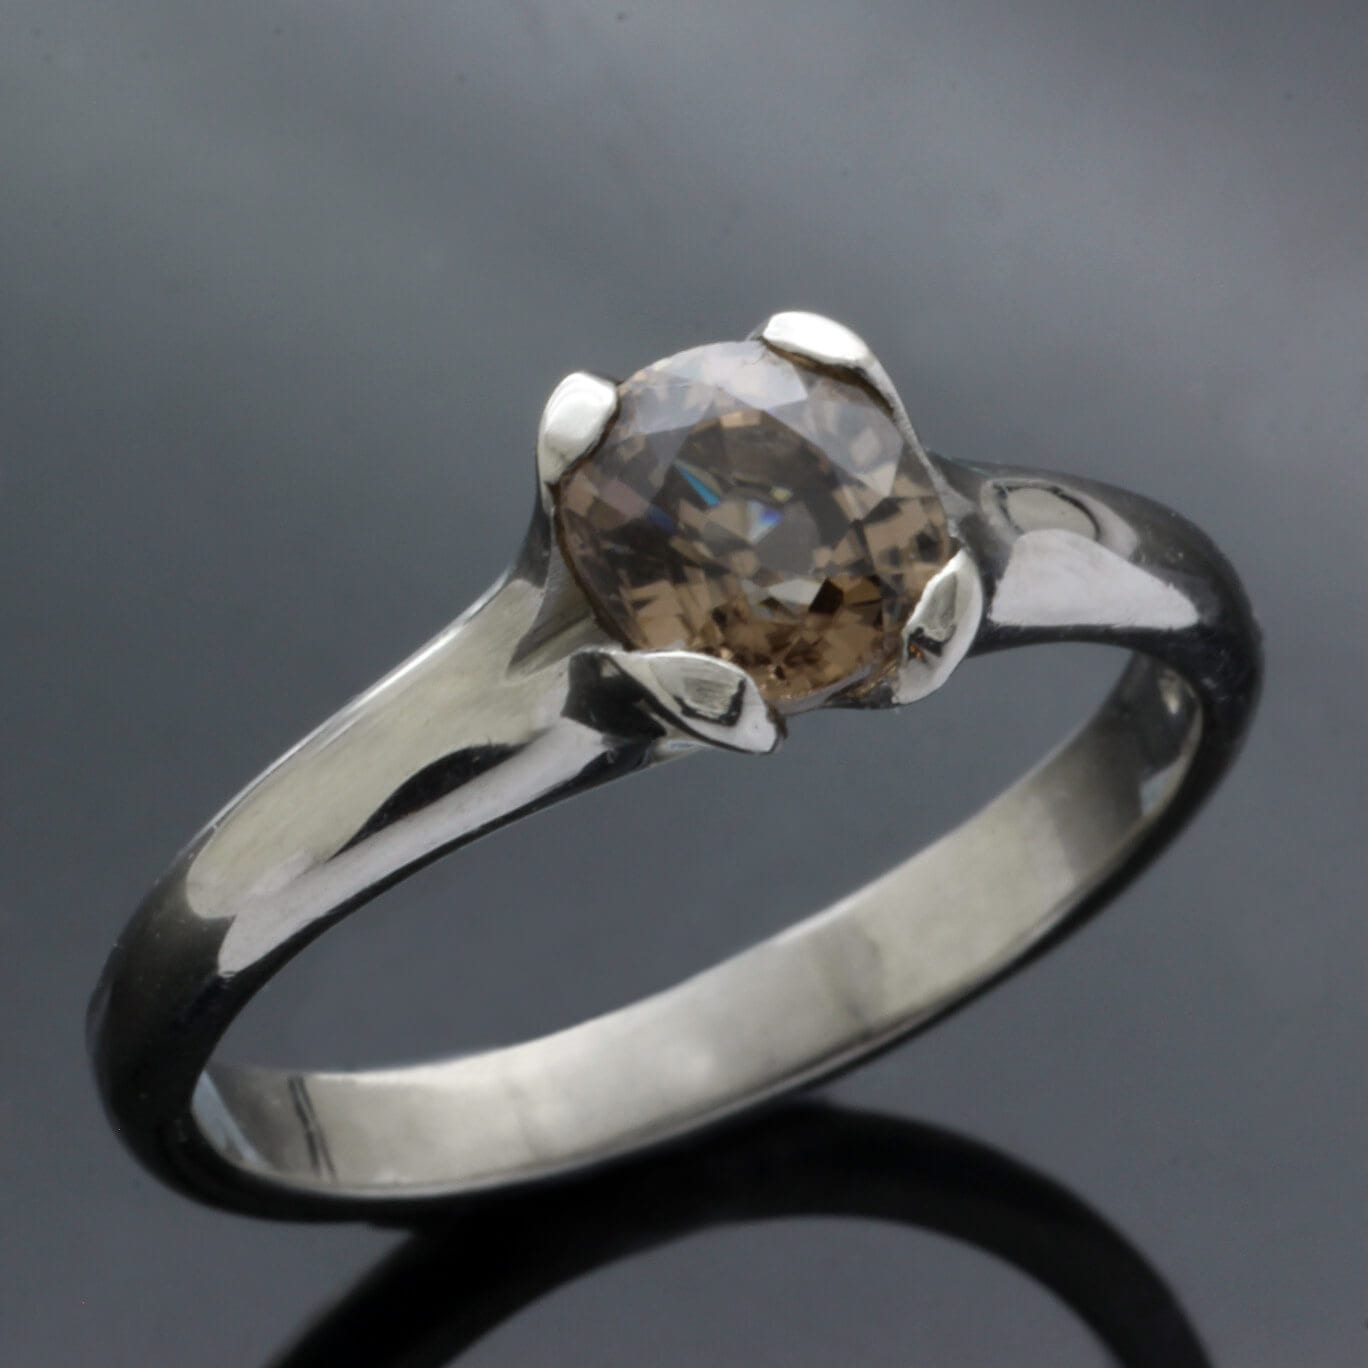 Natural Zircon and Palladium engagement ring by Julian Stephens